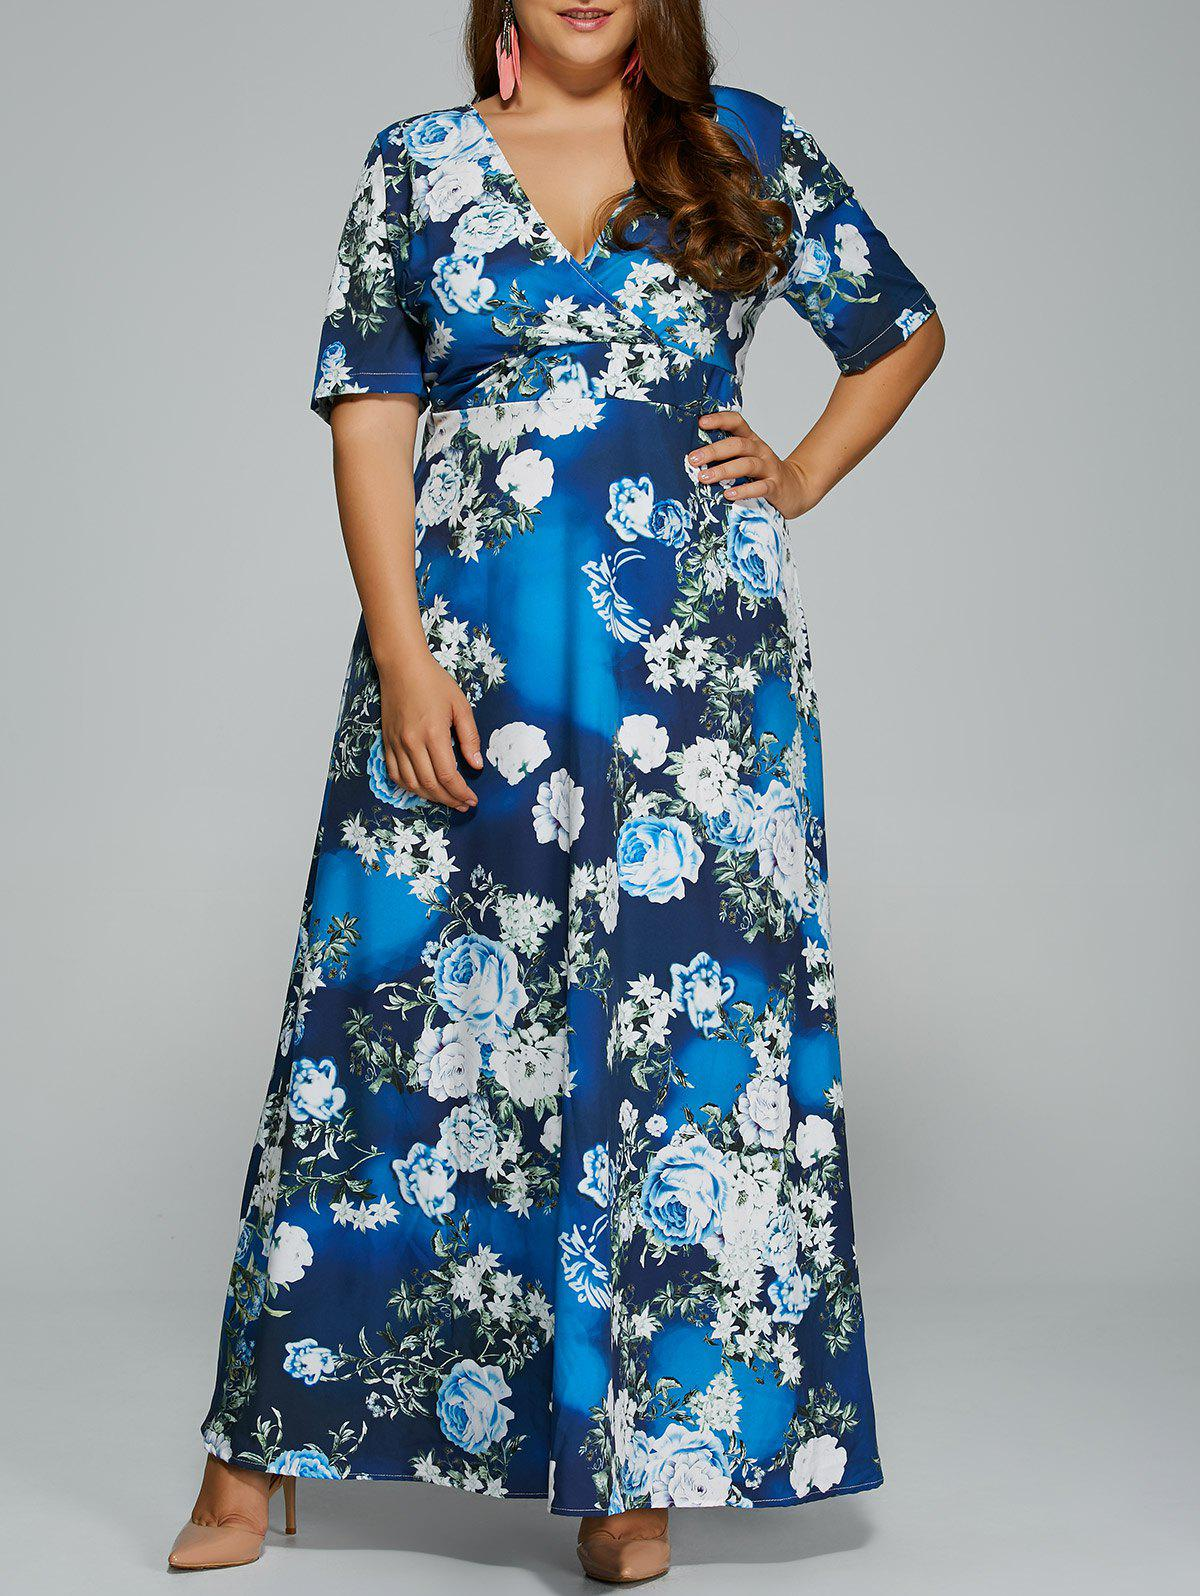 Floral 3xl Floral Print Maxi Plus Size Hawaiian Maxi Dress ...